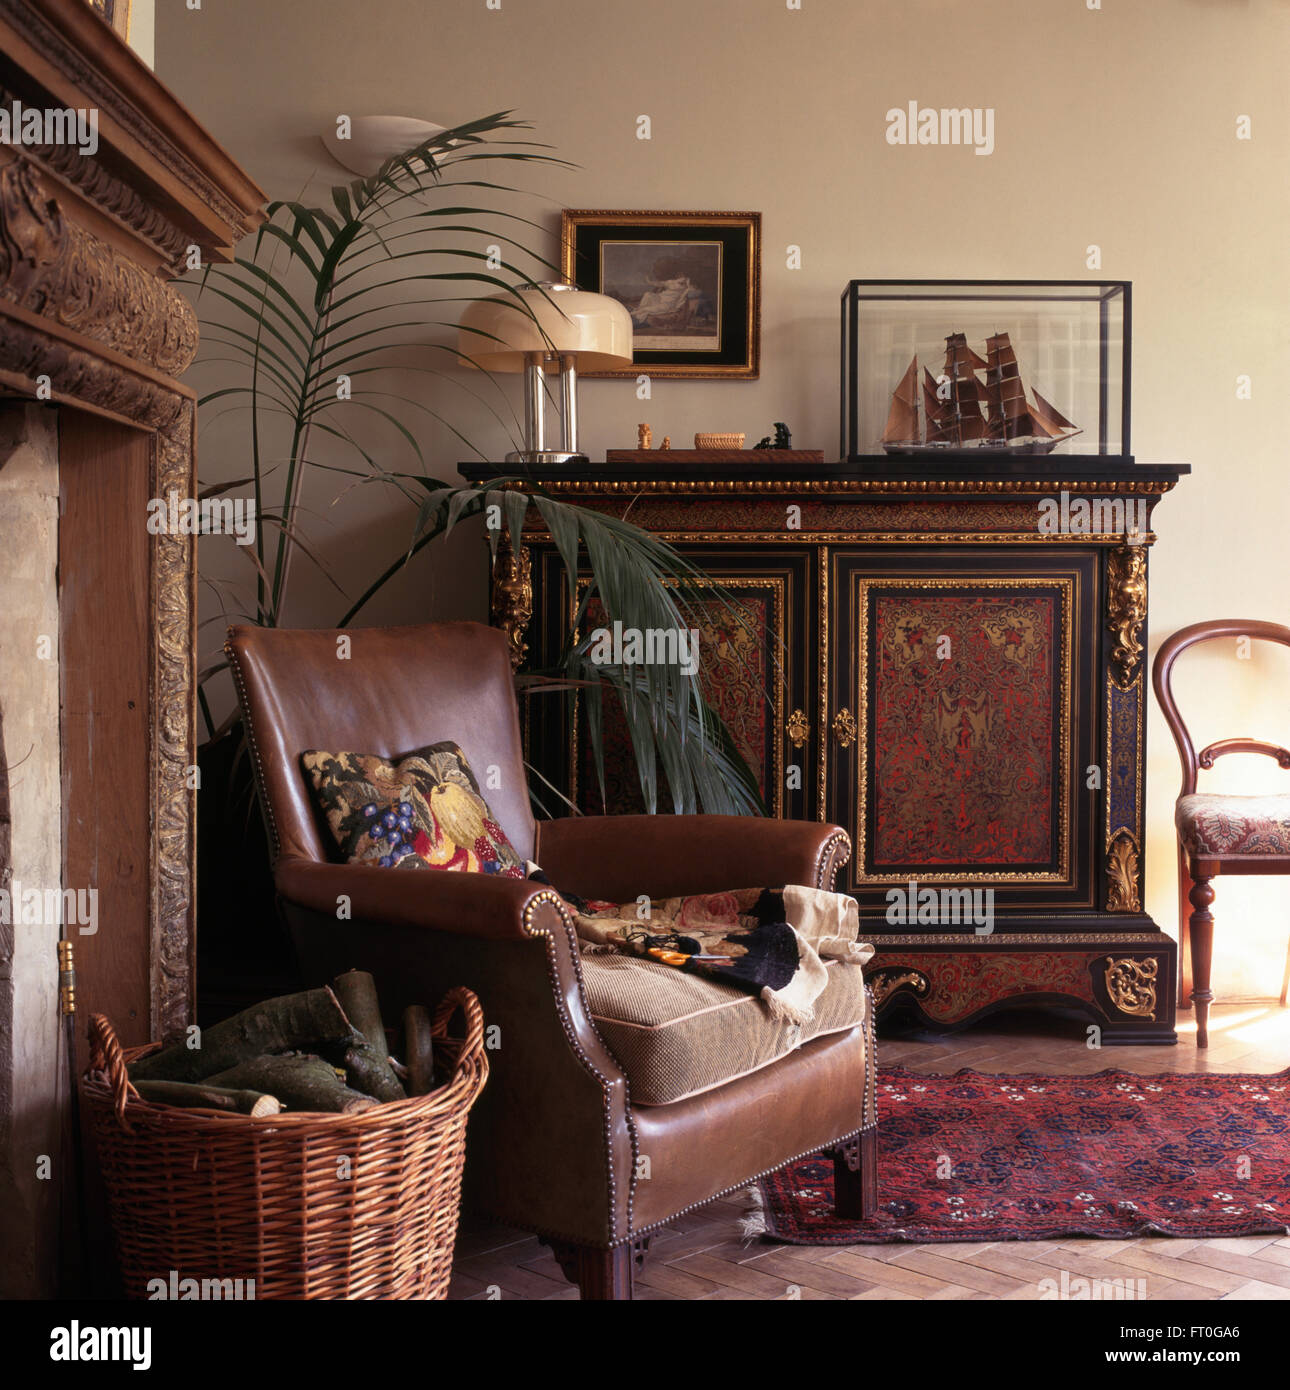 Brown leather chair and ornate antique cupboard in old fashioned living room - Brown Leather Chair And Ornate Antique Cupboard In Old Fashioned